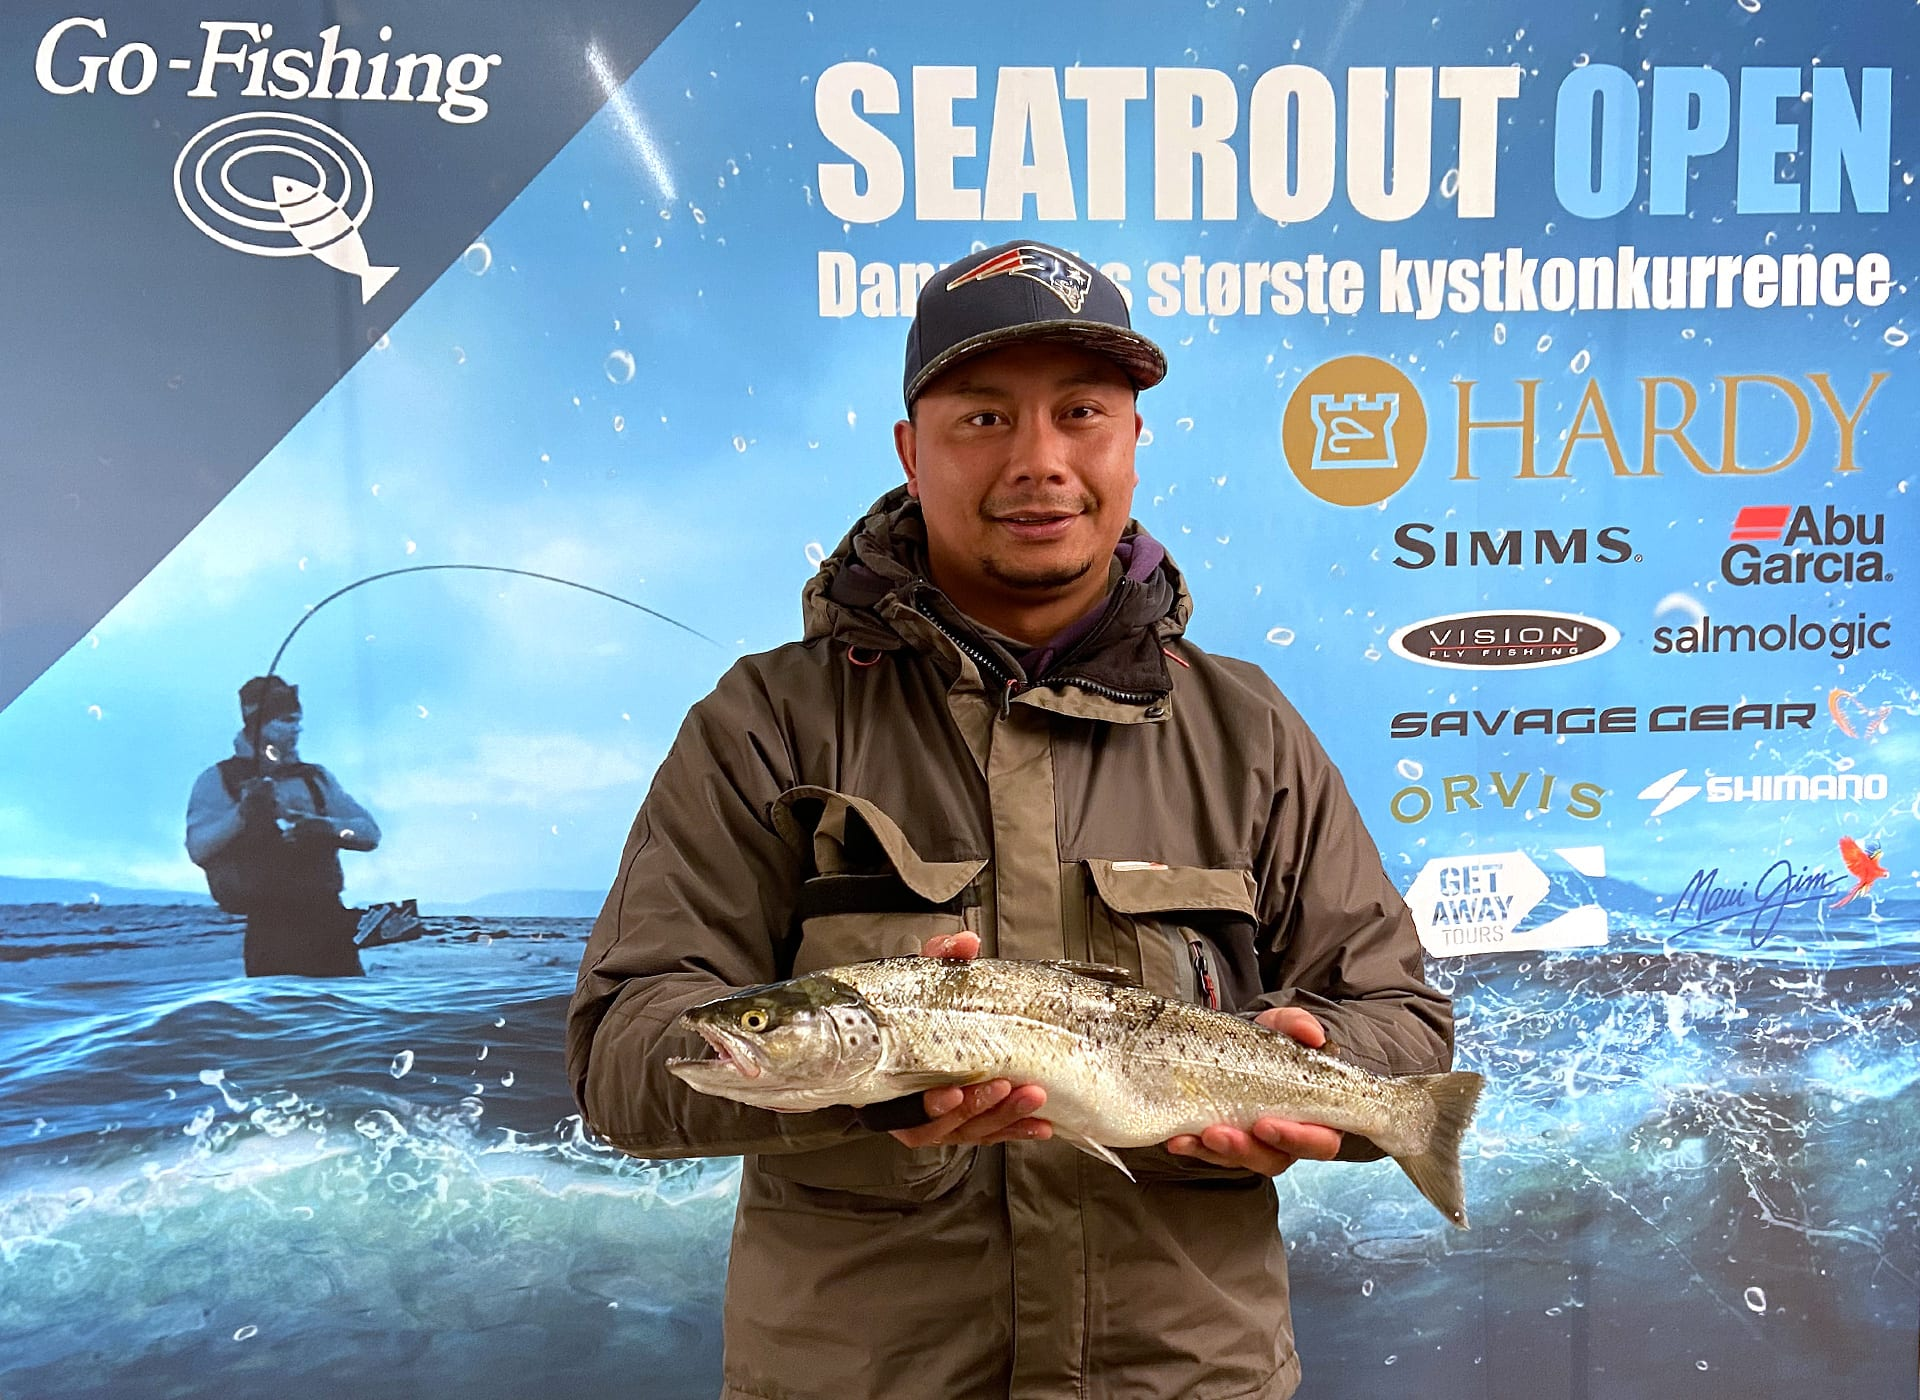 Seatrout Open deltager Semmy Woundenberg